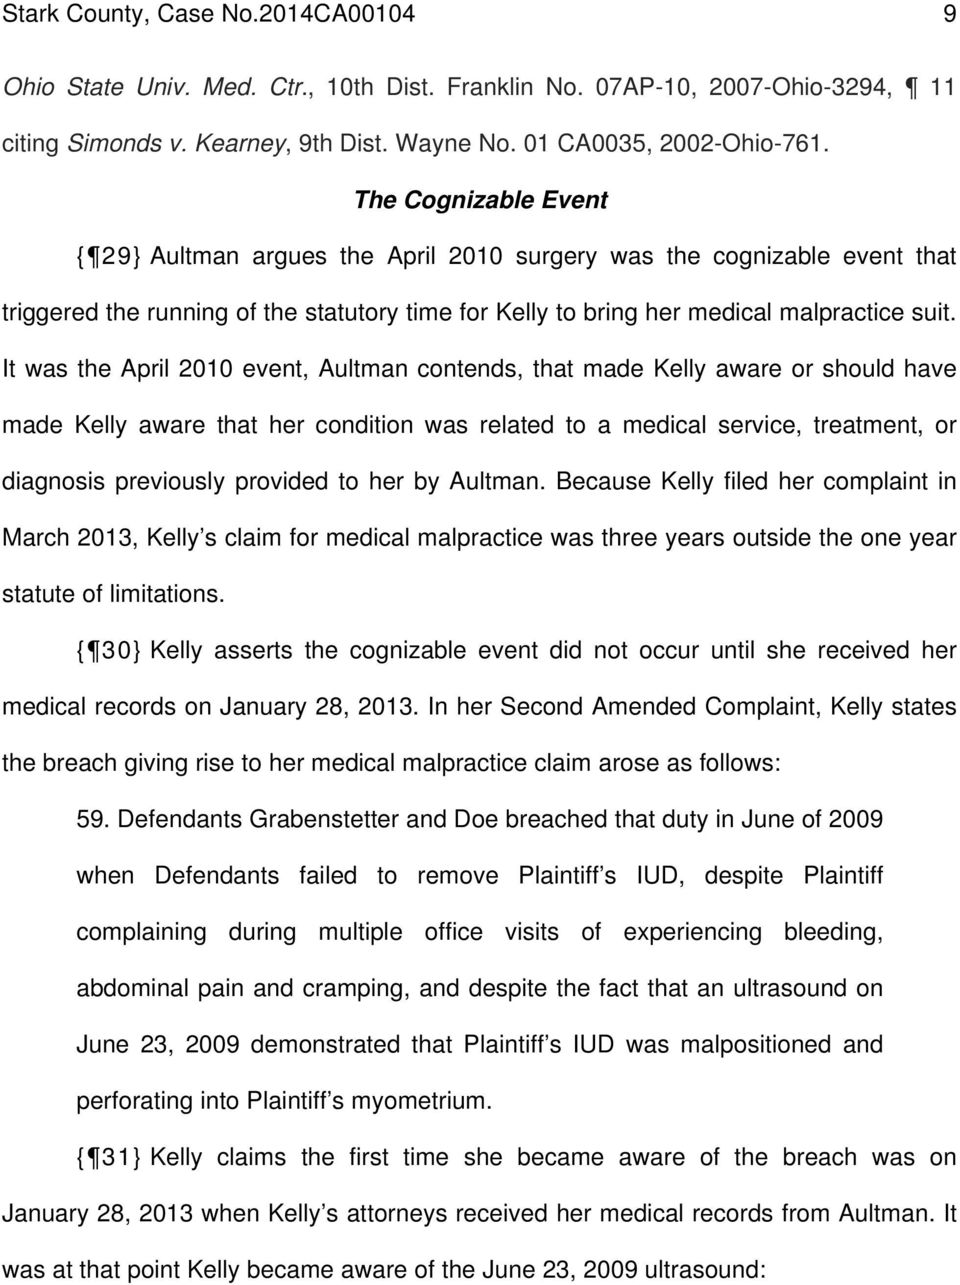 It was the April 2010 event, Aultman contends, that made Kelly aware or should have made Kelly aware that her condition was related to a medical service, treatment, or diagnosis previously provided